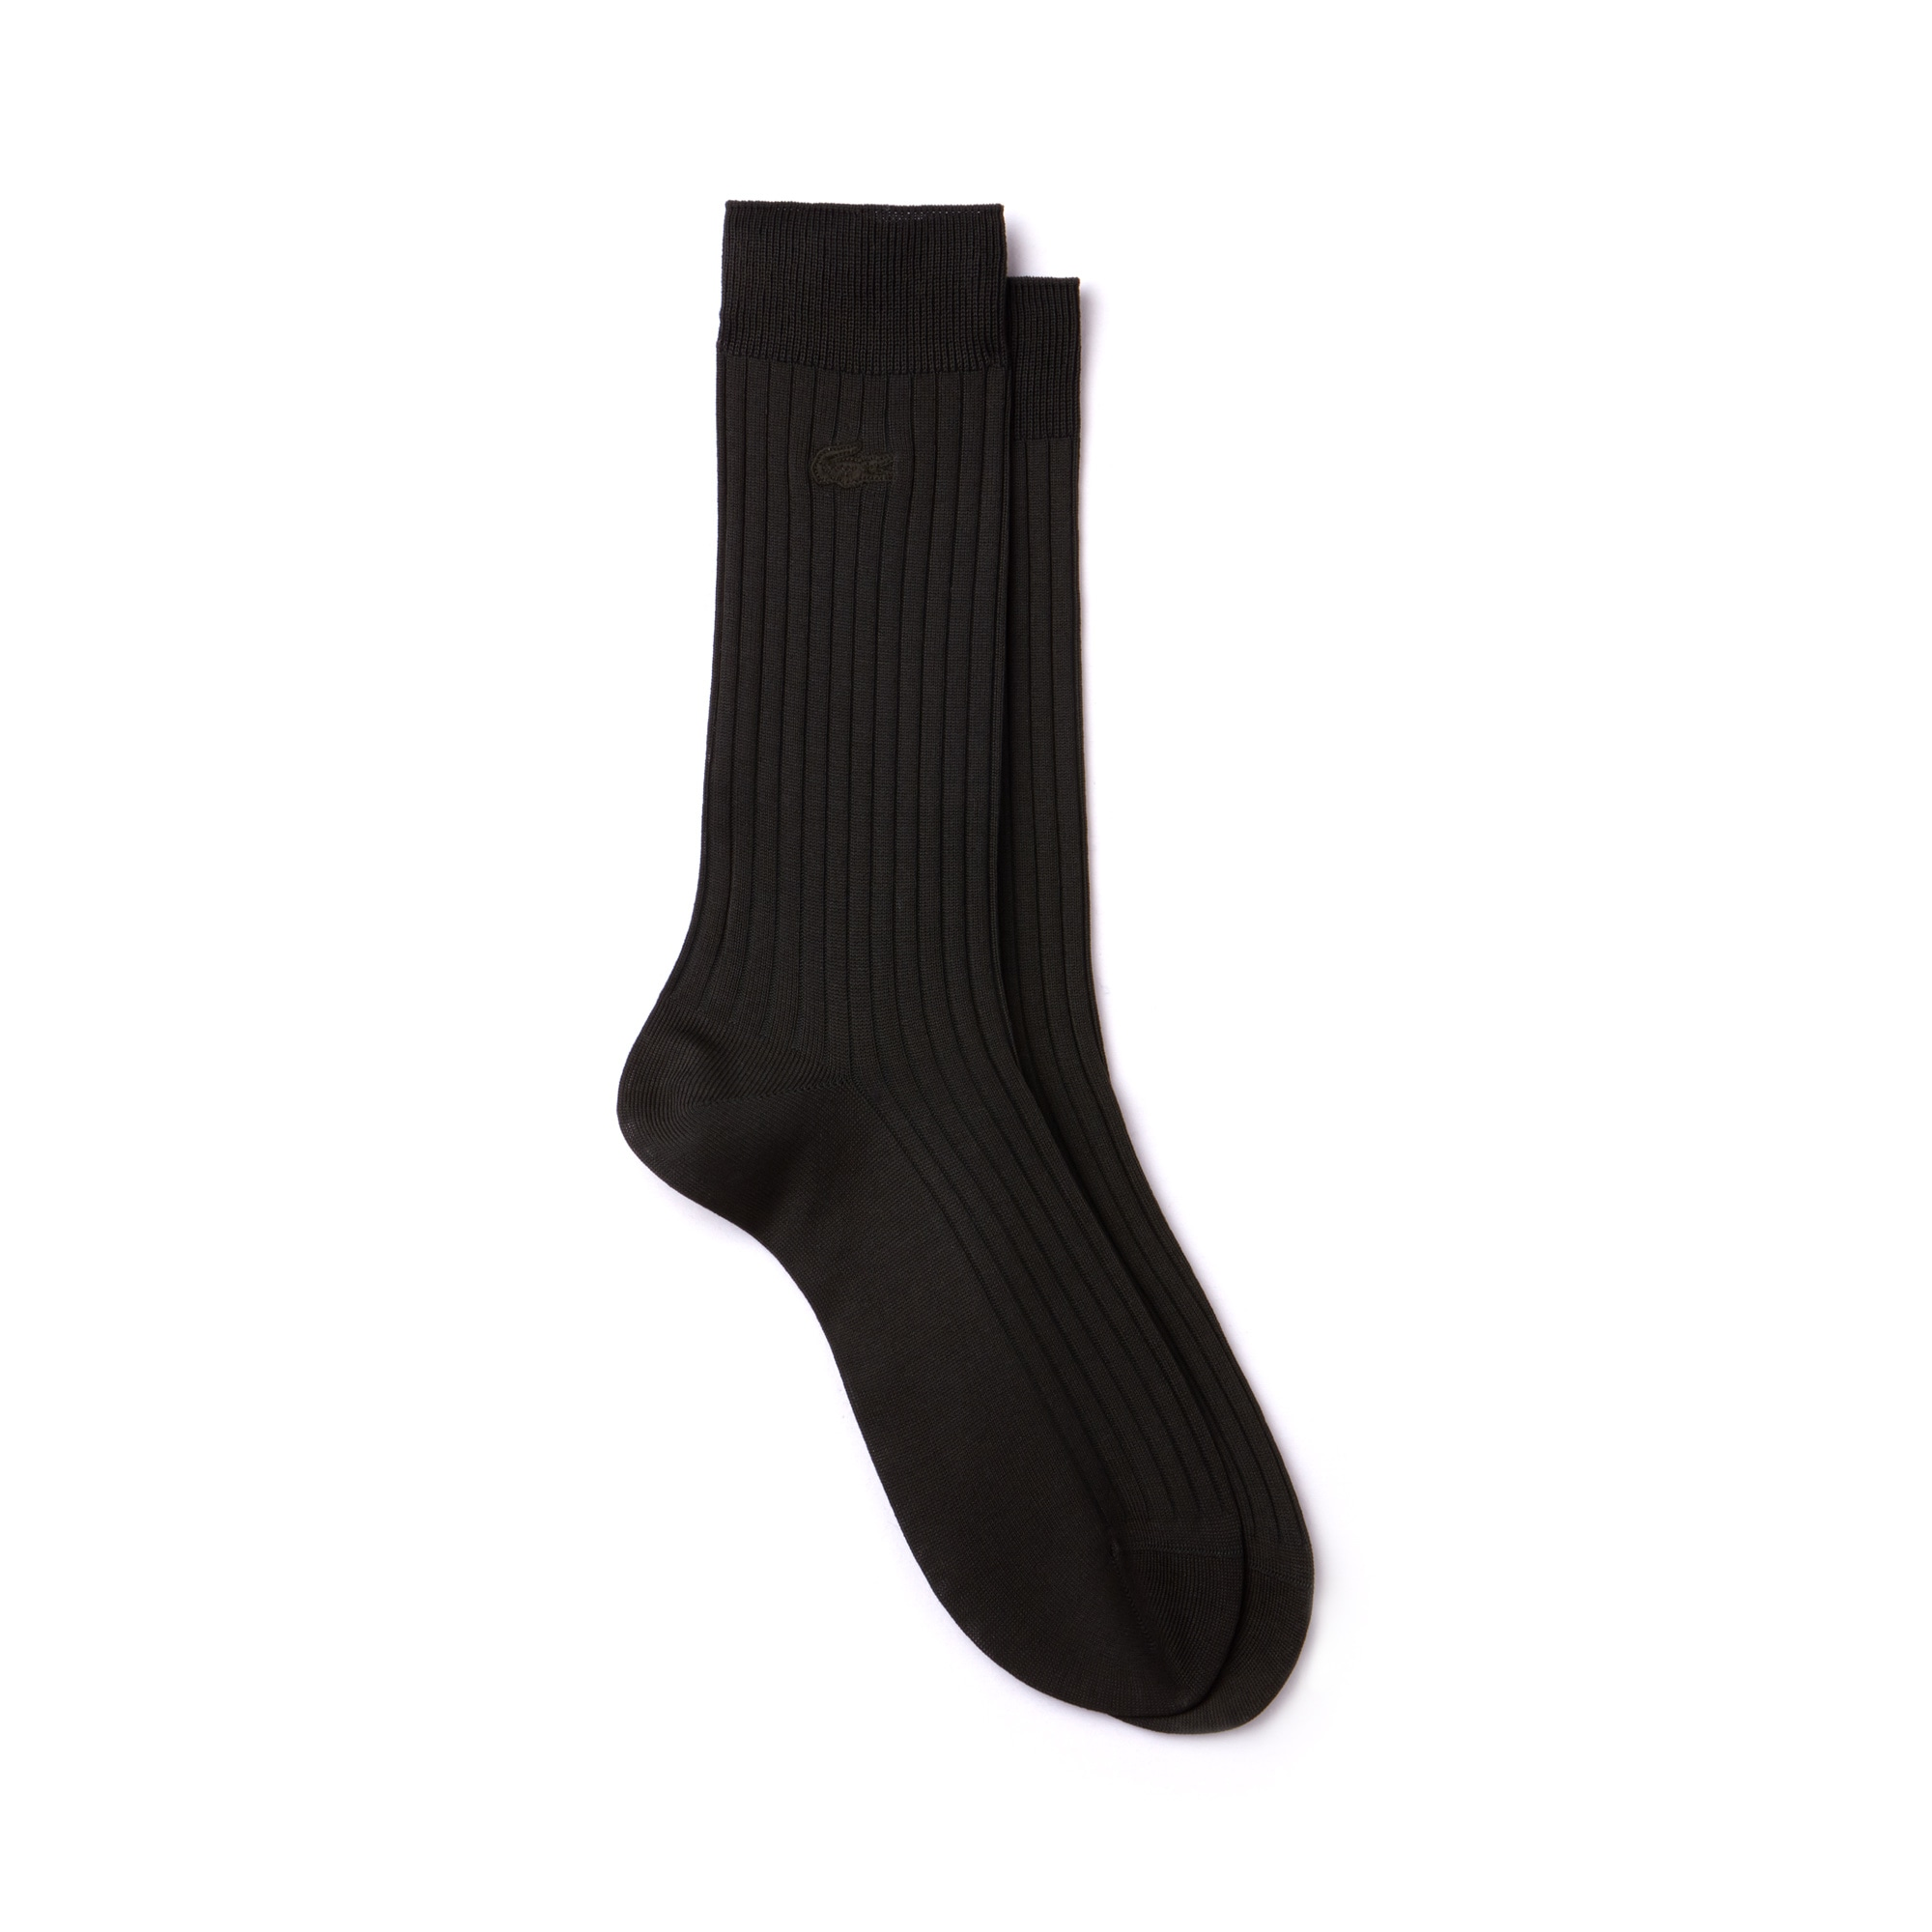 Men's Ribbed solid socks in mercerized cotton blend